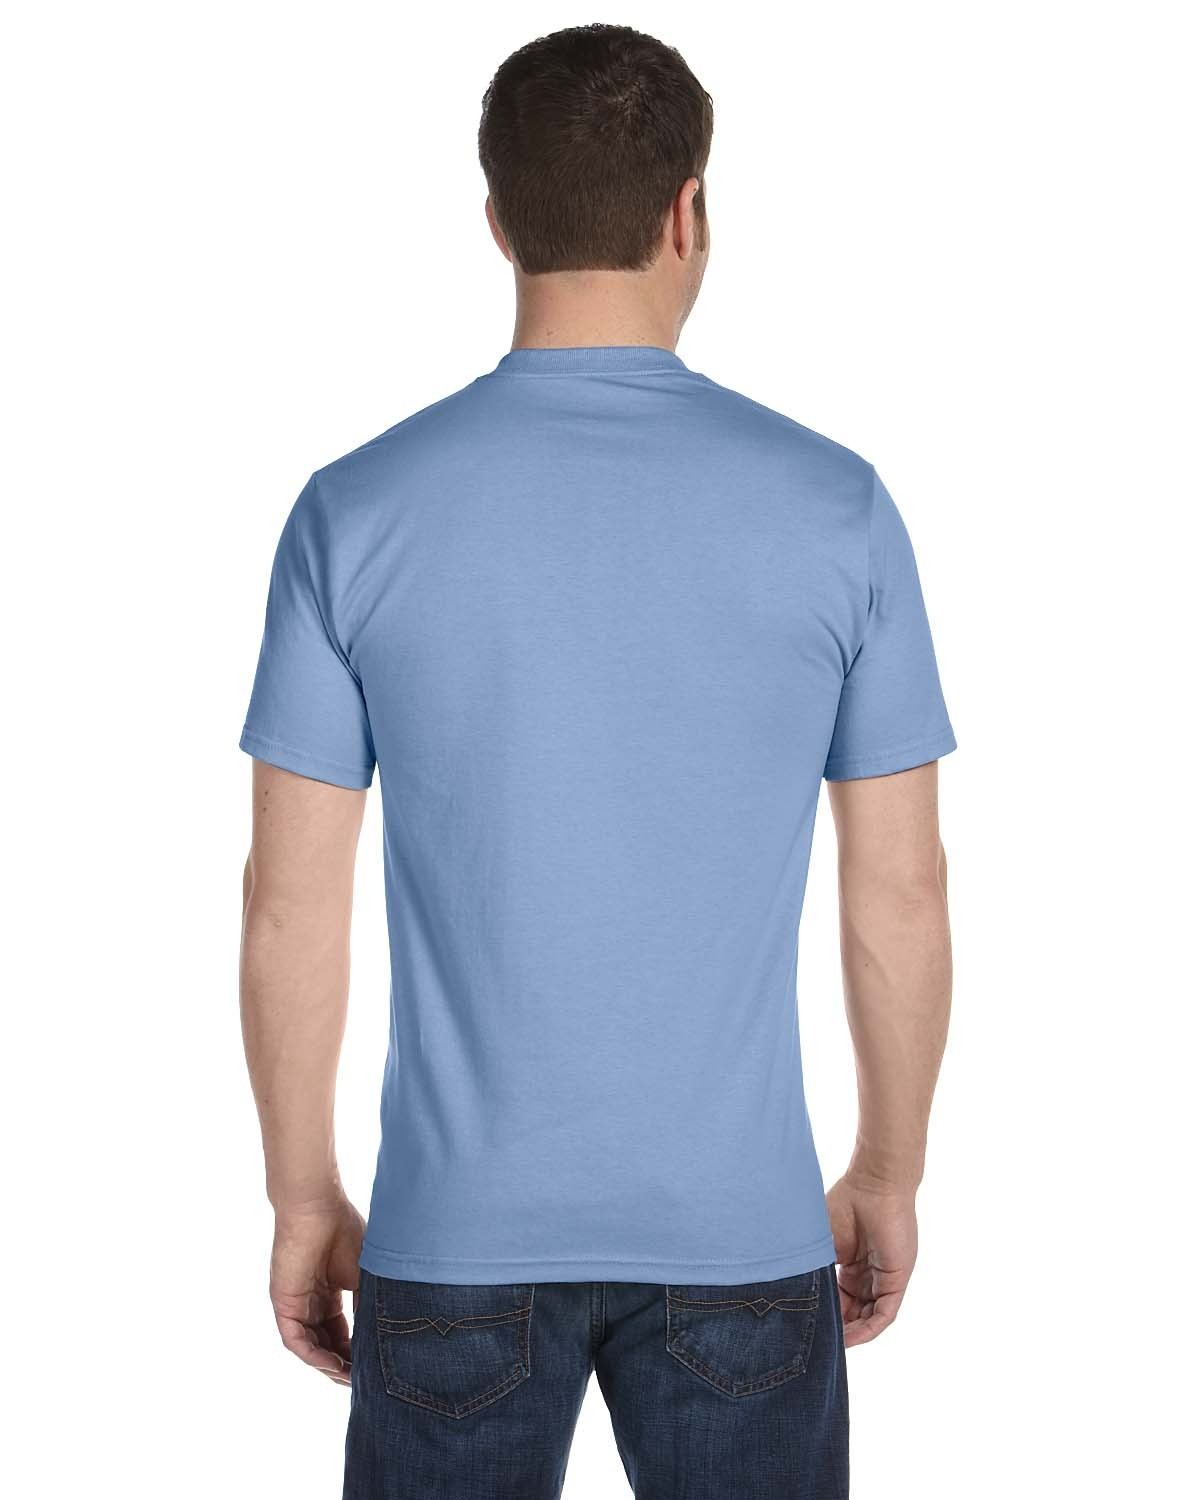 5280 Hanes LIGHT BLUE